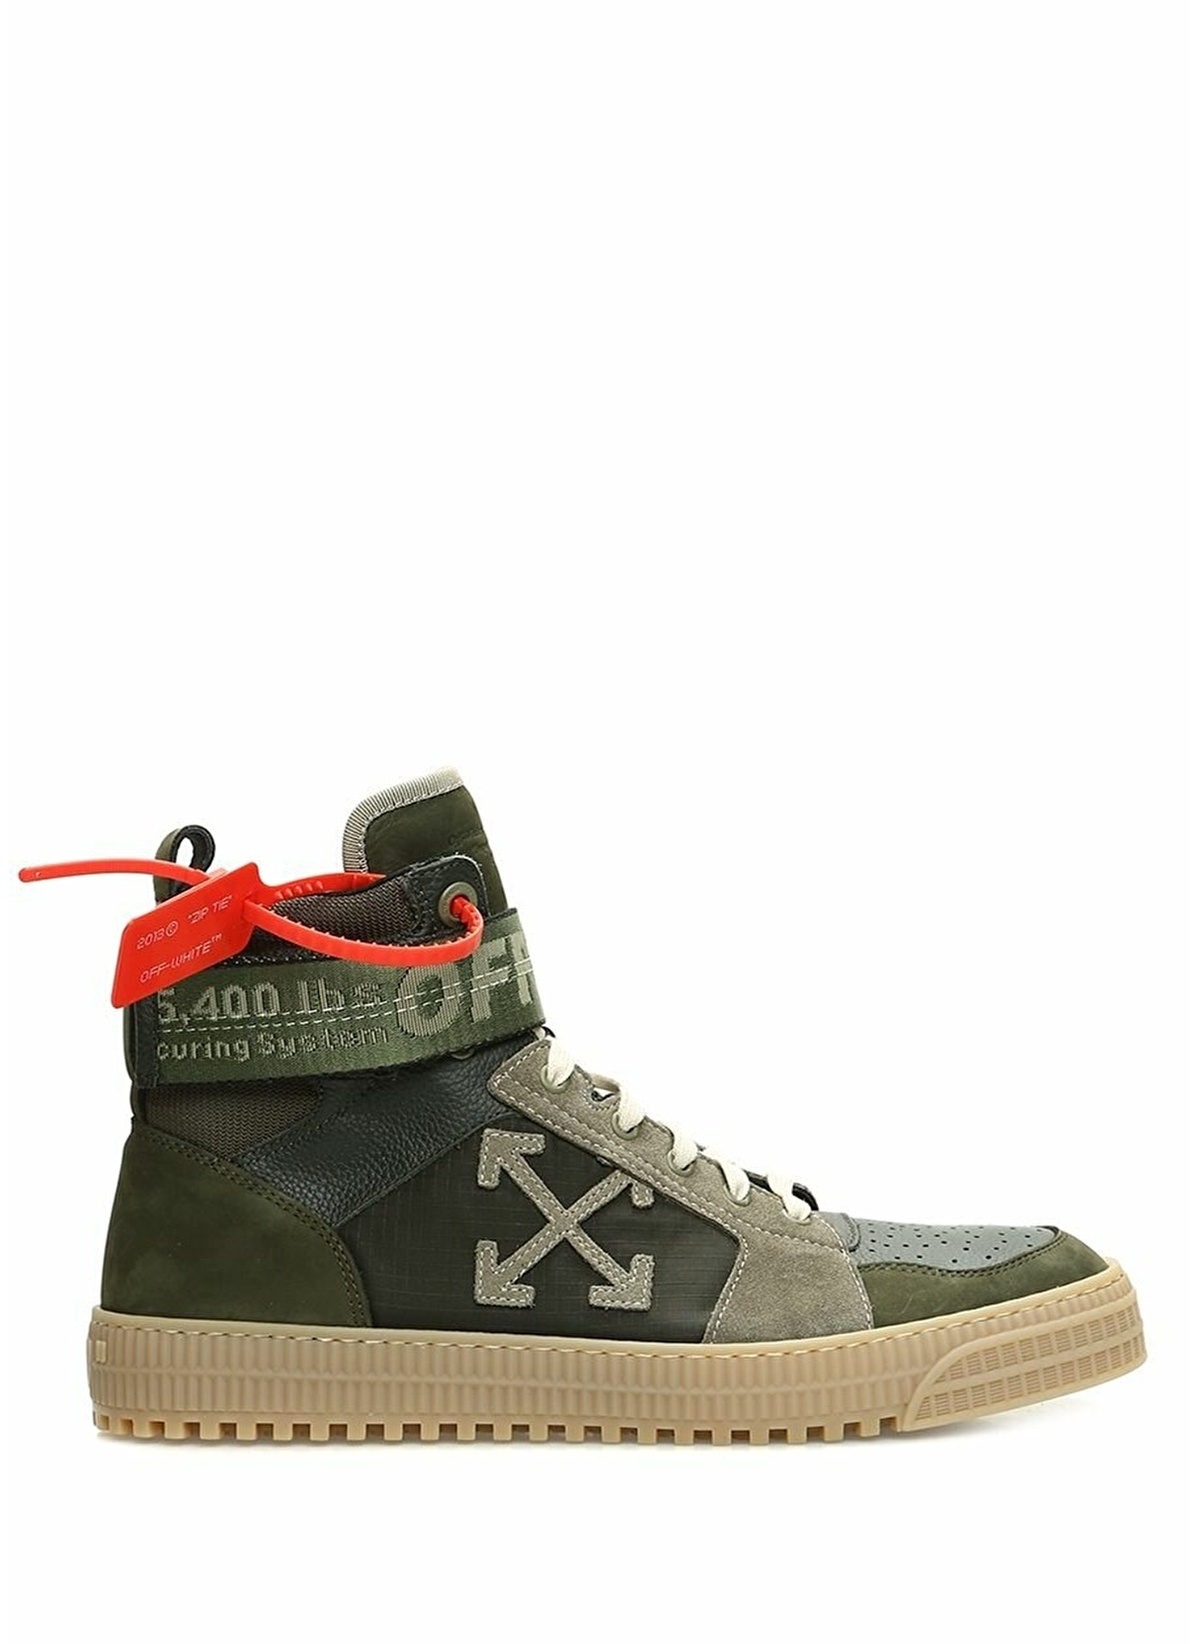 Off-white Sneakers 101384398 E Sneakers – 4299.0 TL